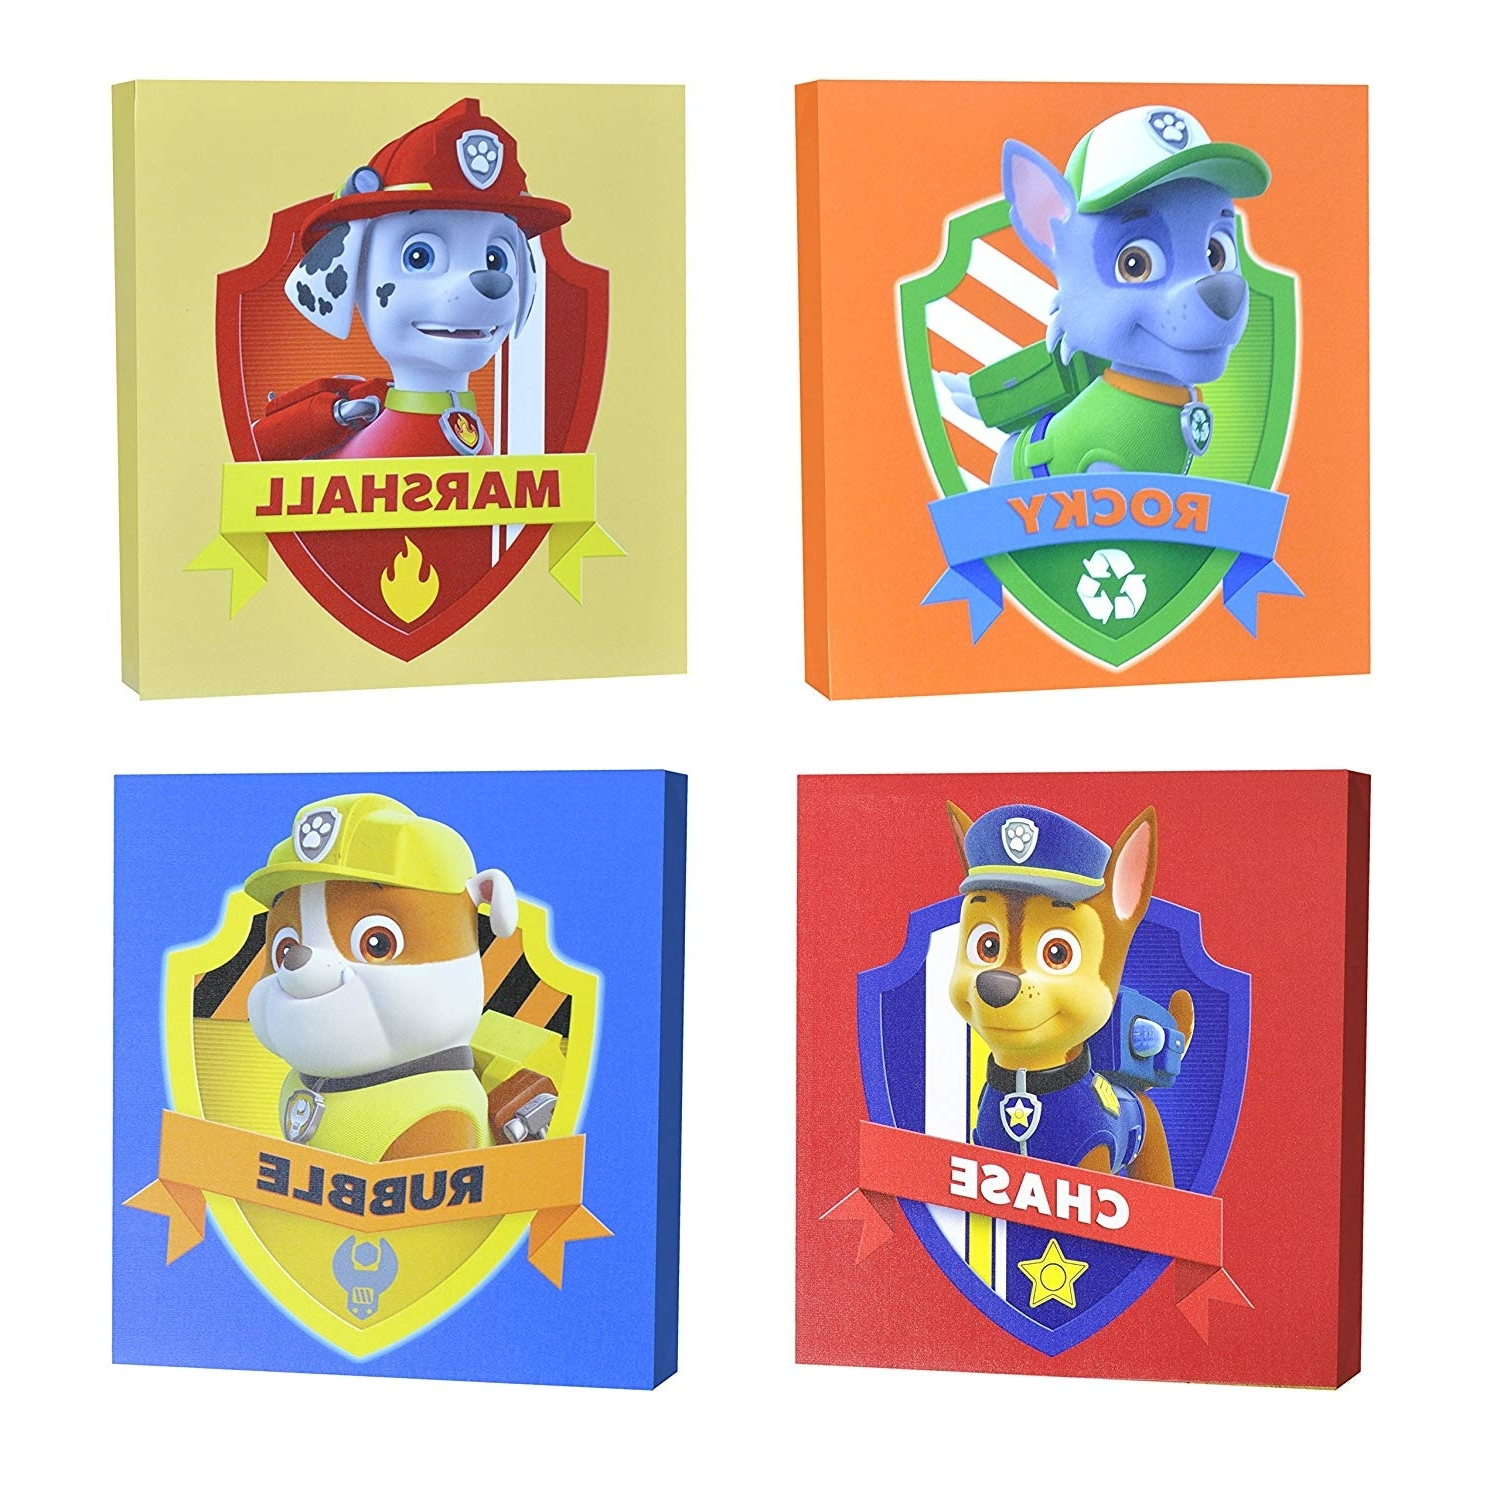 """Trendy Mickey Mouse Canvas Wall Art Pertaining To Amazon: Nickelodeon Paw Patrol Square Canvas Wall Art 11"""" Toy (View 12 of 15)"""